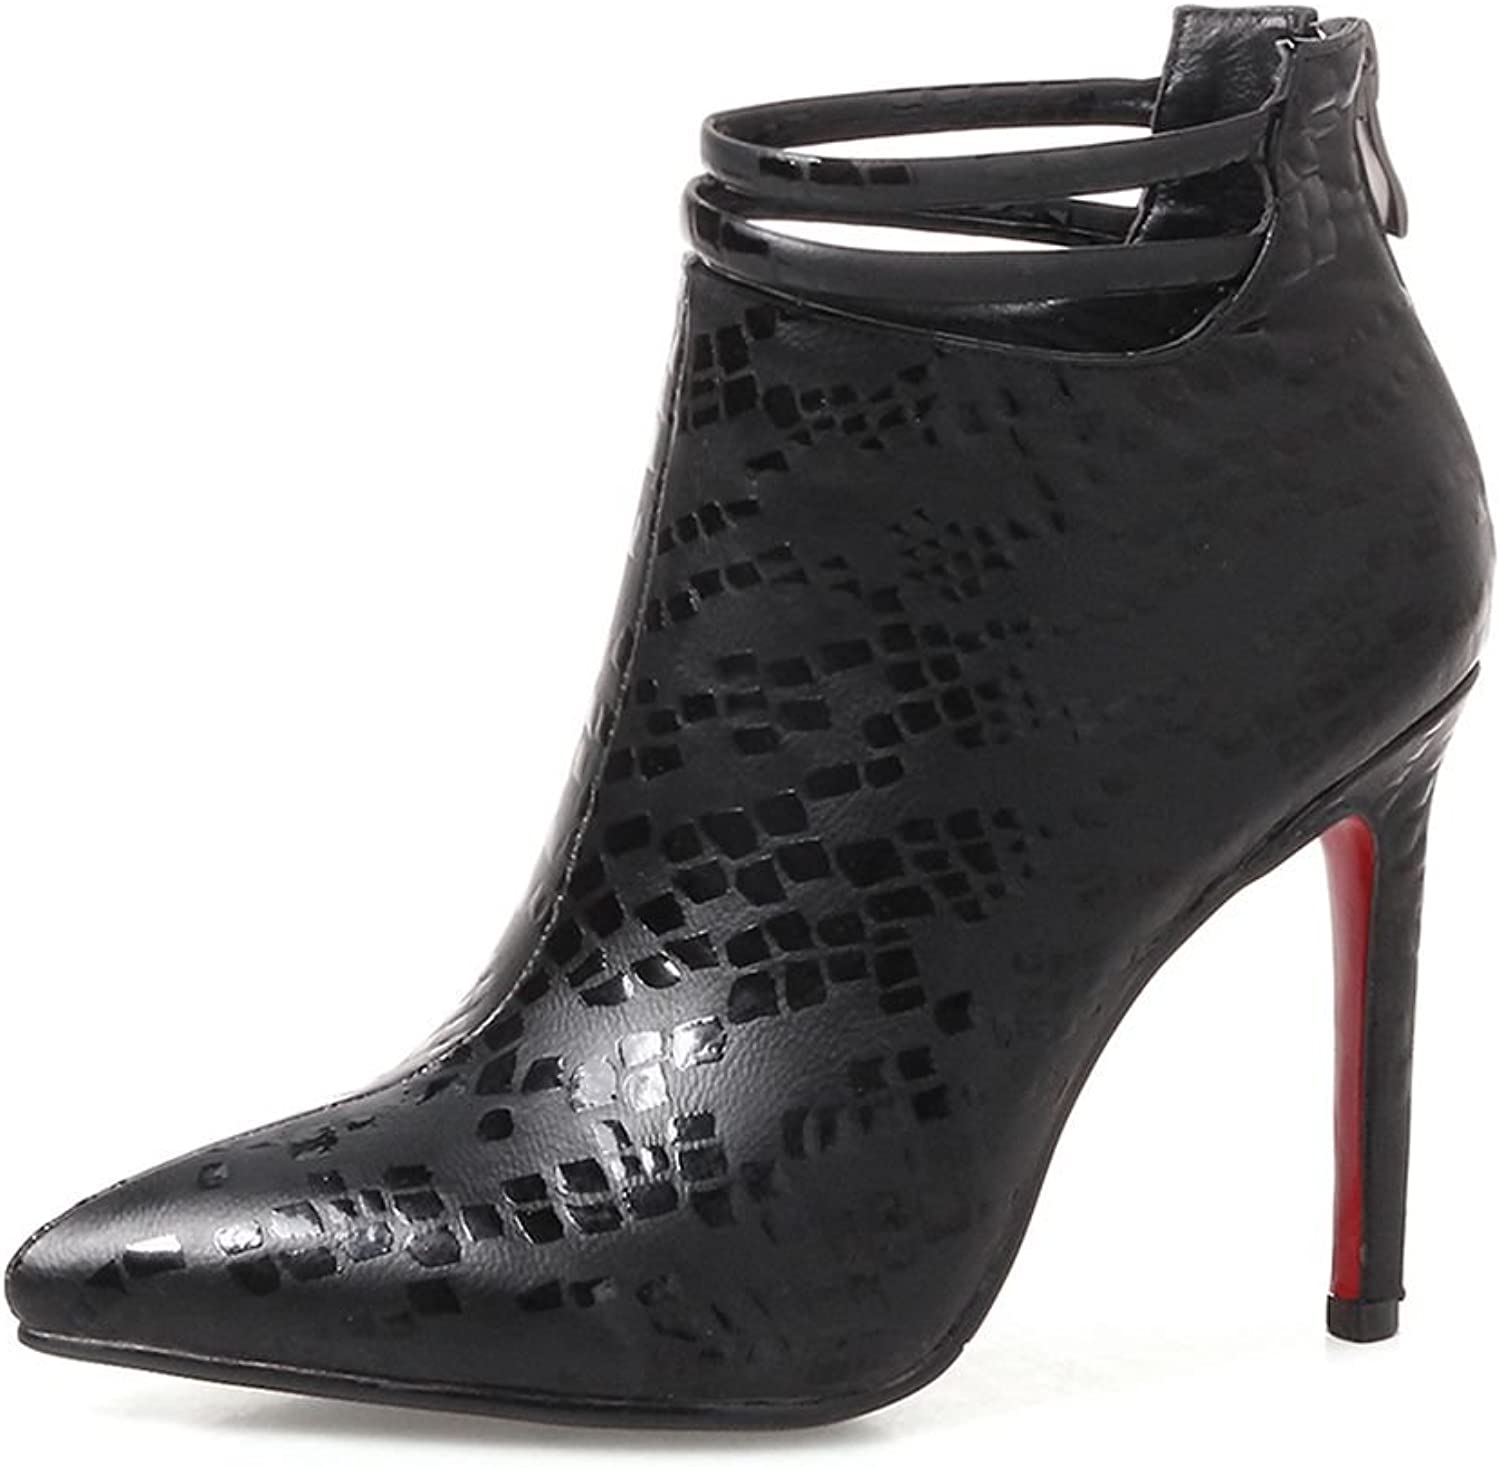 SaraIris Ankle Boots Stiletto Heels Pointed-Toe Zipper Strap Boots for Women